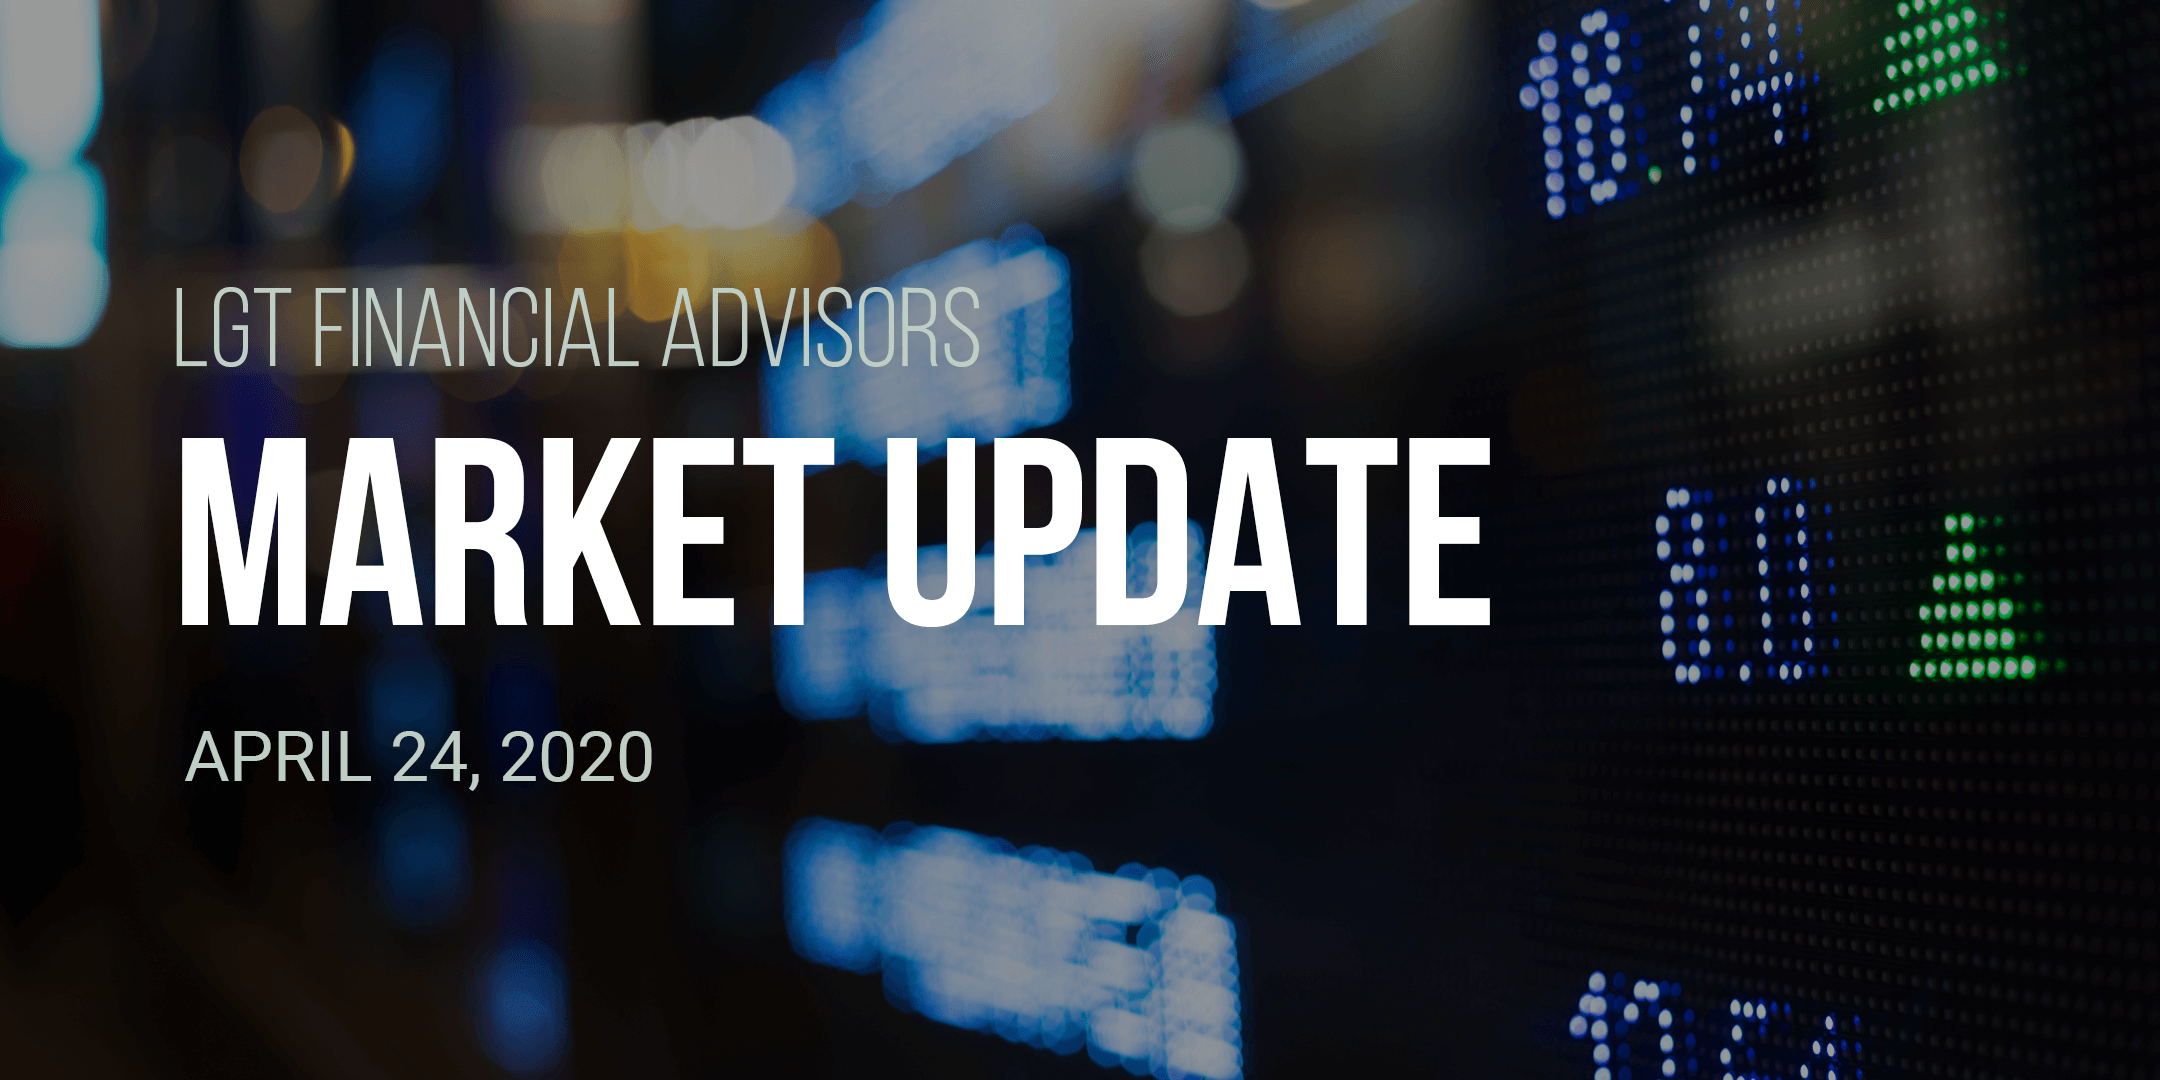 FA Market Update - April 24, 2020